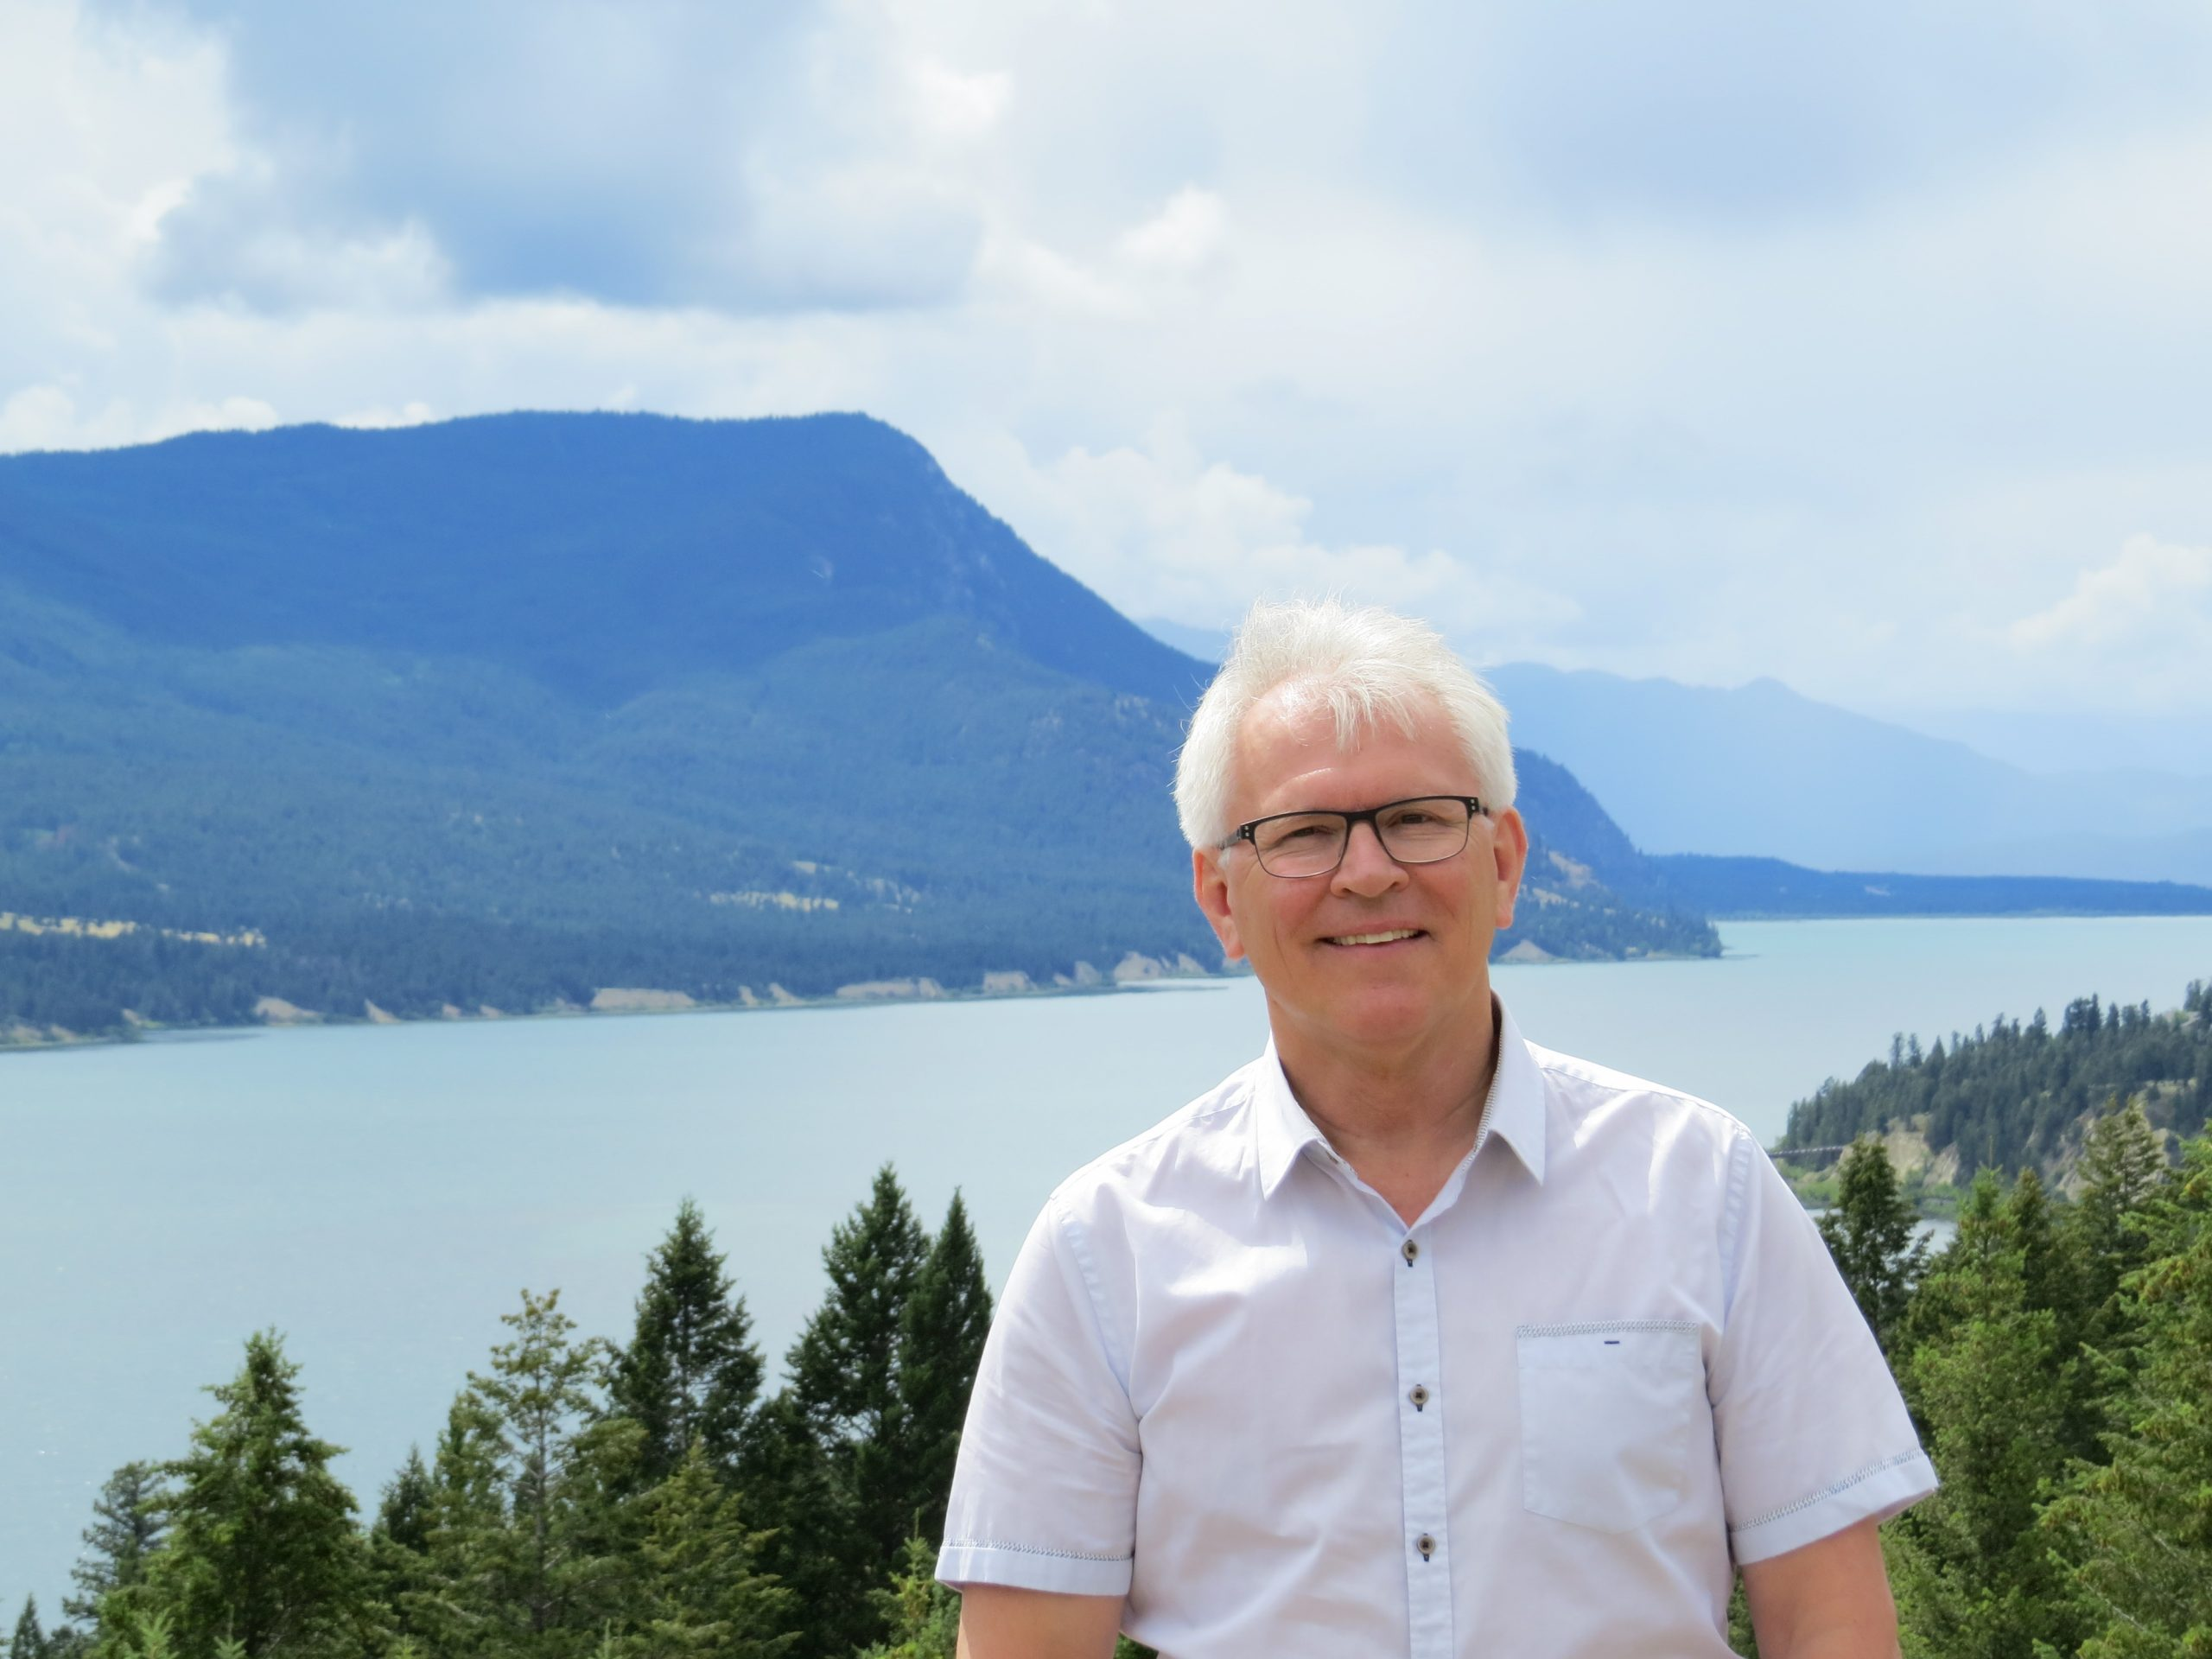 Kootenay-Columbia MP praises new protection for lakes and rivers